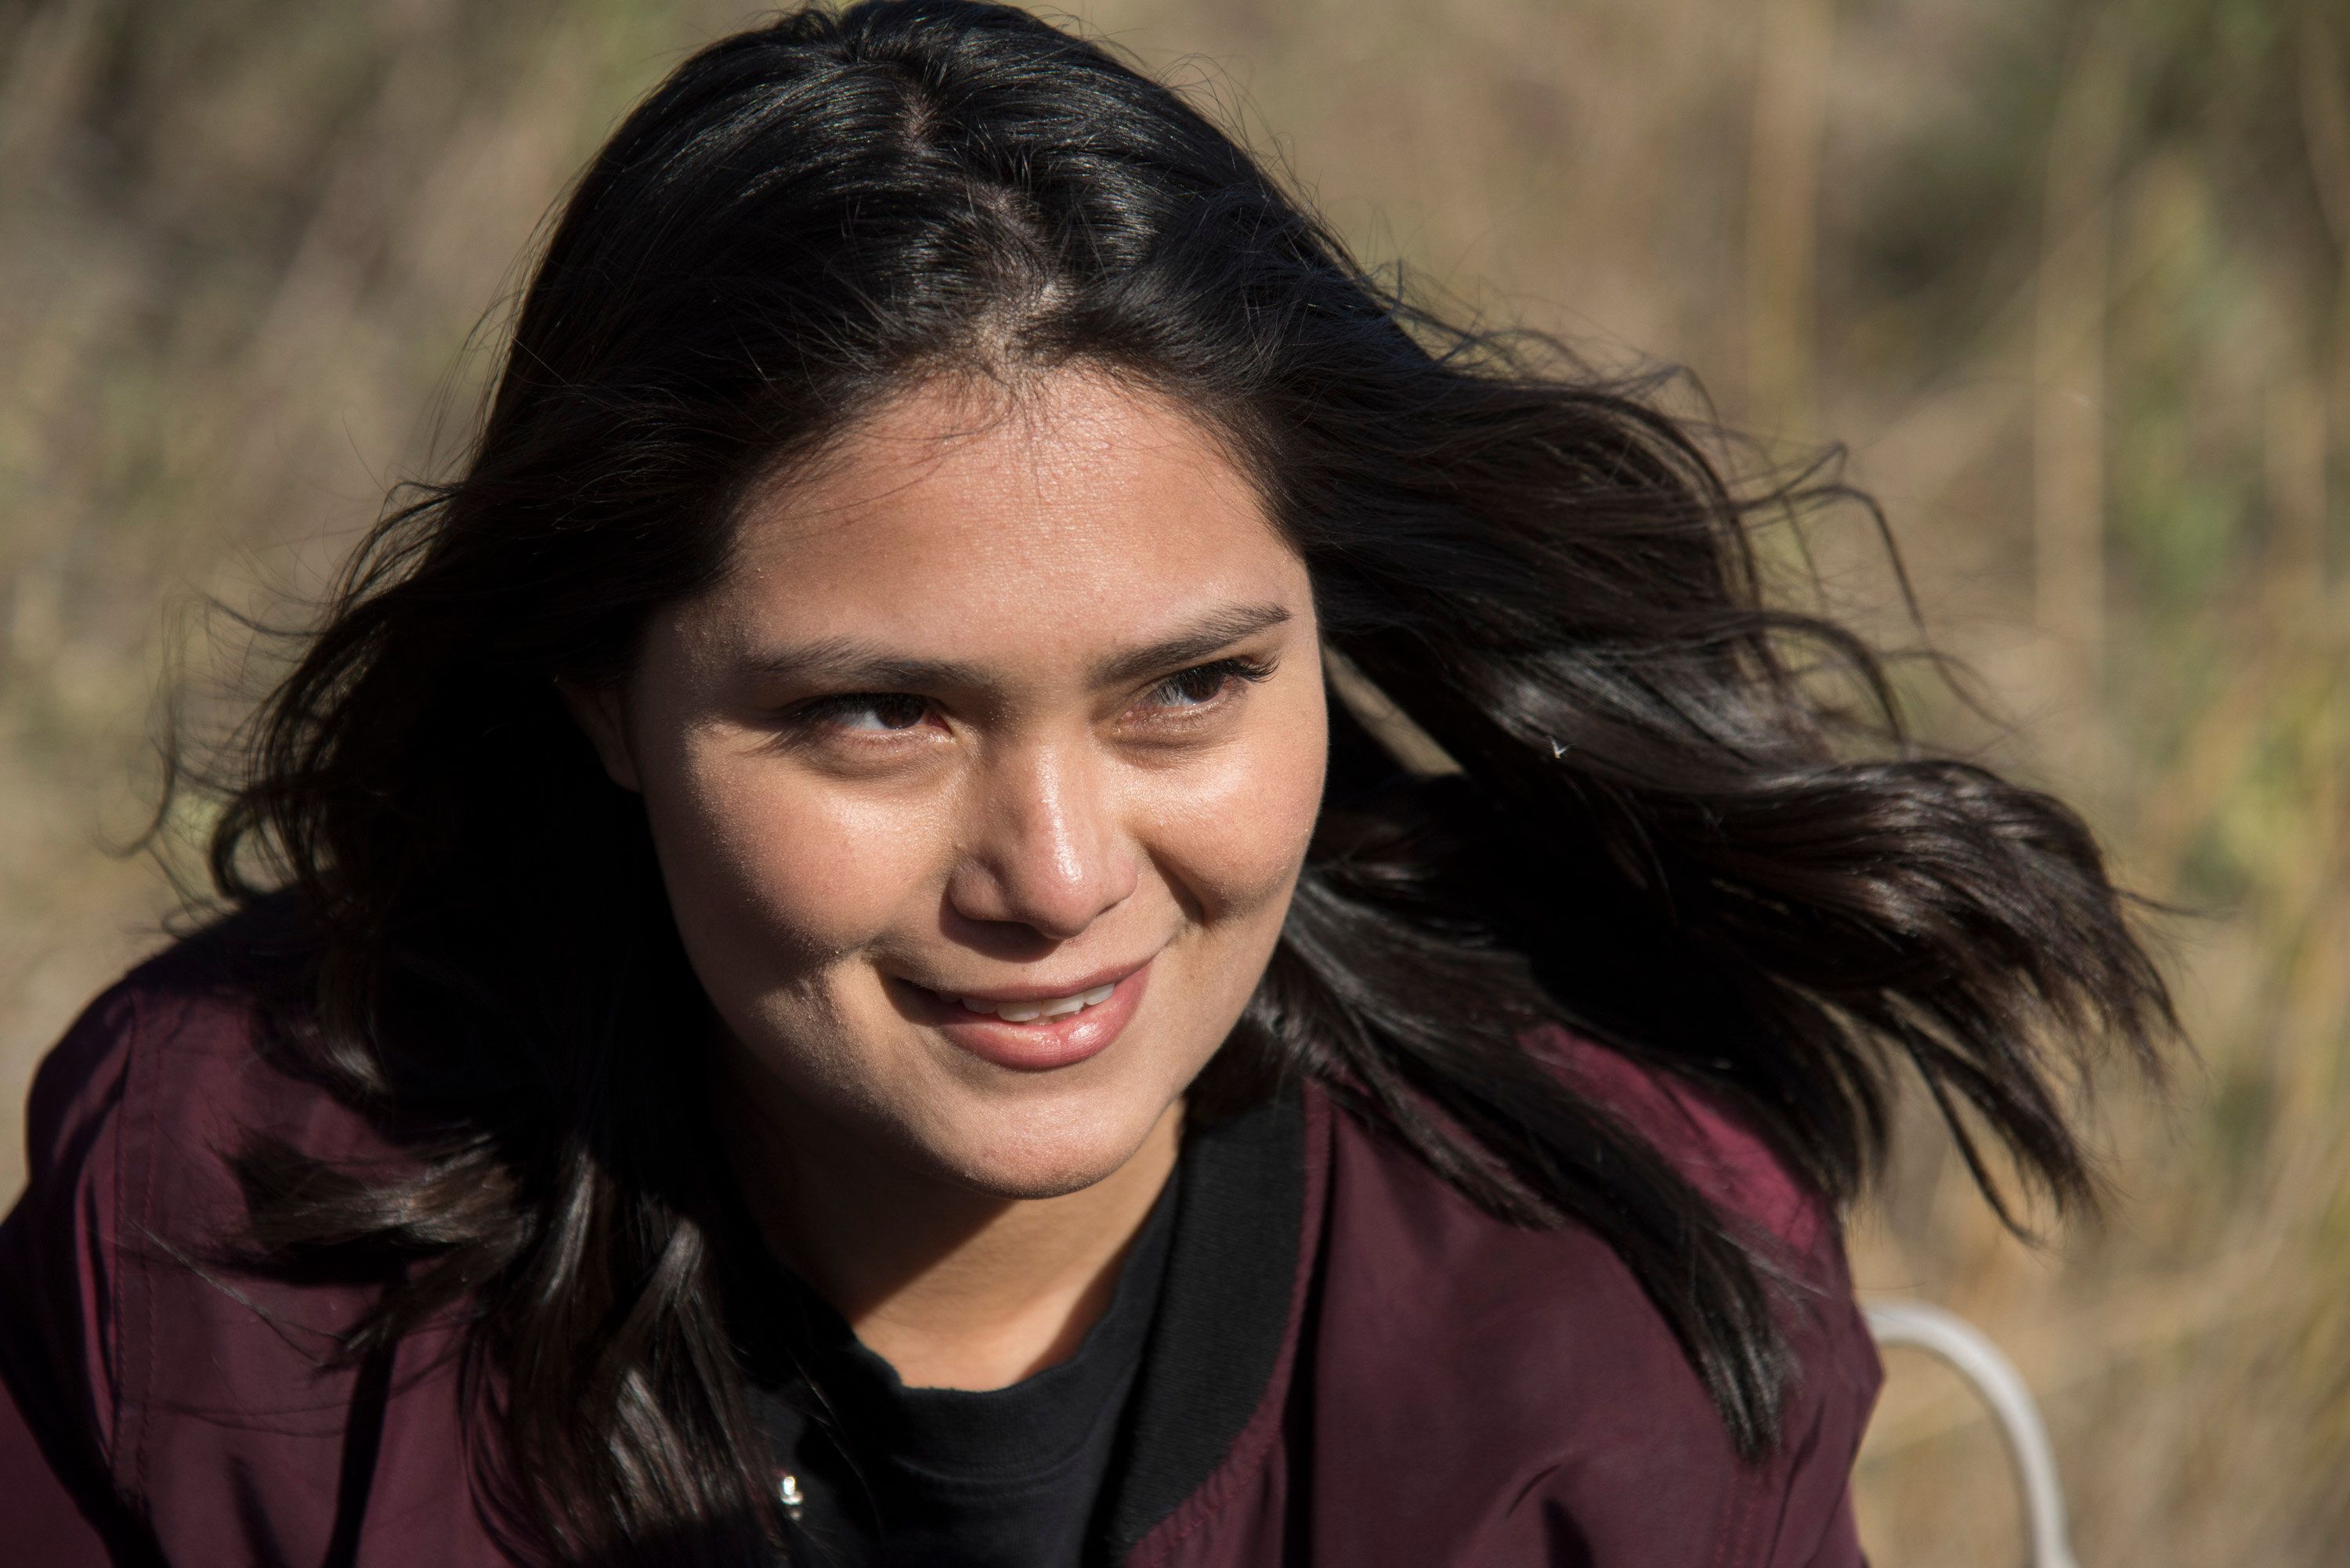 This Young Environmental Activist Lives 500 Feet From A Drilling Site